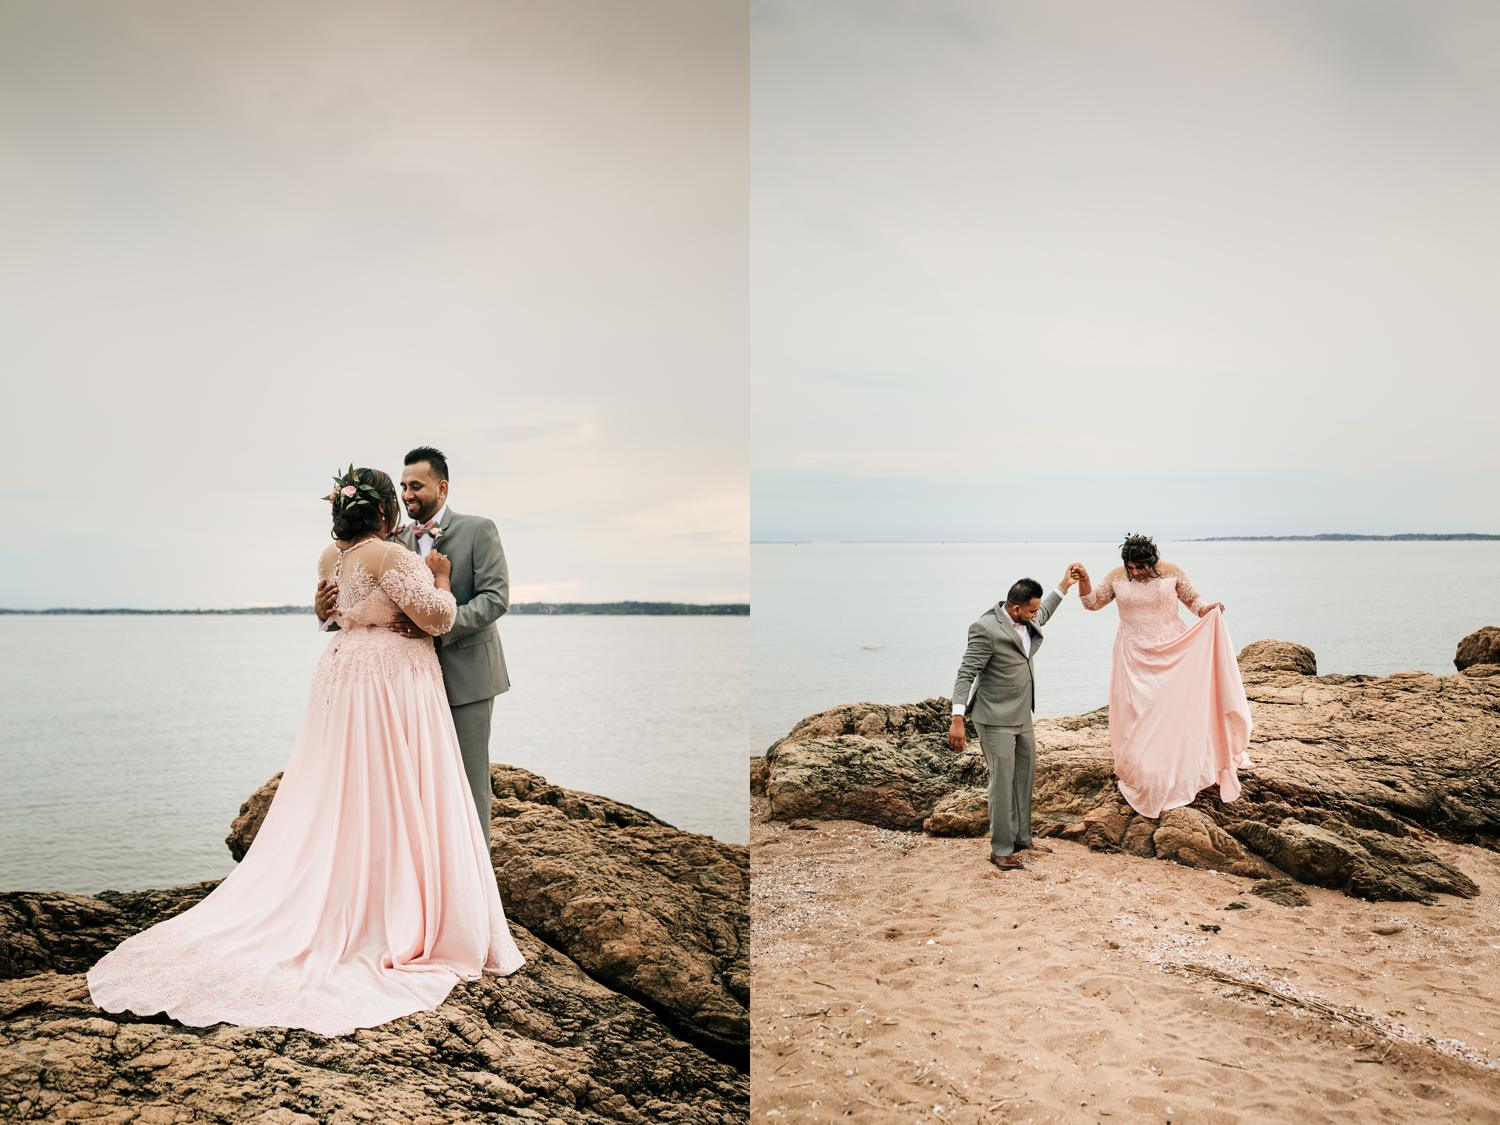 12. natural-wedding-photographer-boston-northeast-andrea-van-orsouw-photography-adventurous-southwest-fun2.jpg